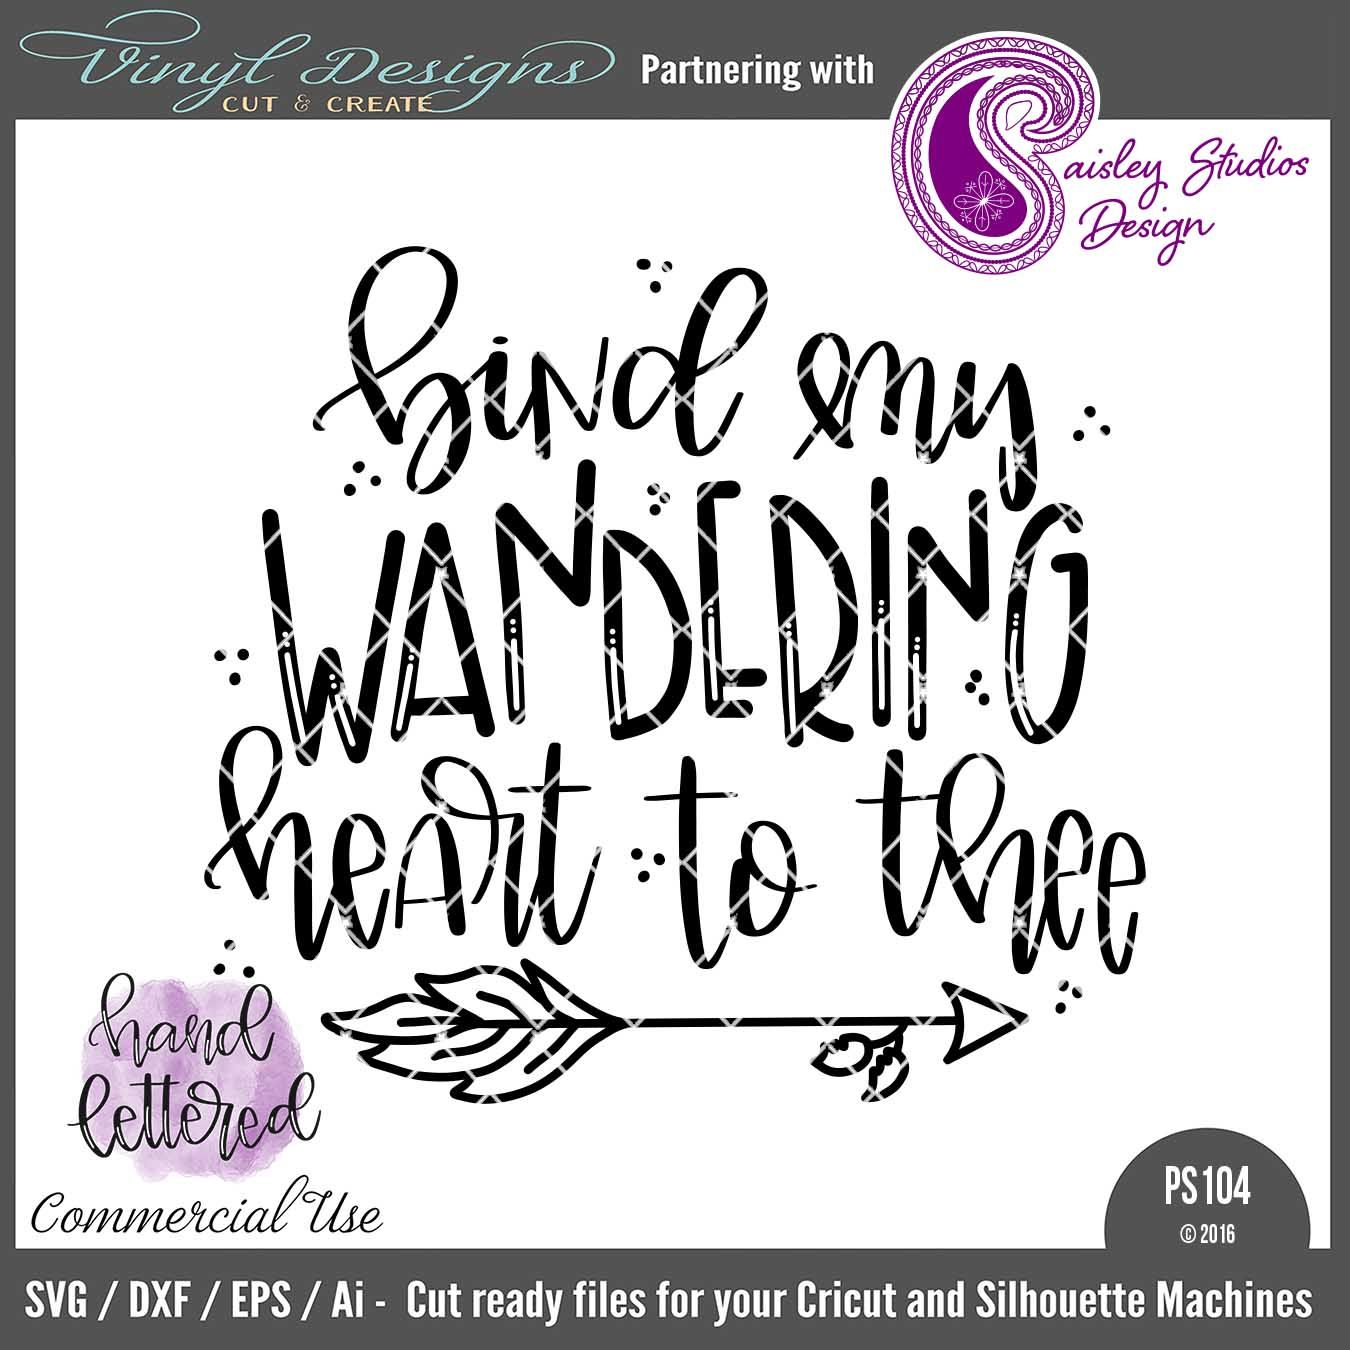 Ps104 Bind My Wandering Heart Sold By Paisley Studios Designsmall Business Commercial Useavailable In Svg Dxf Eps And Ai Format Vinyl Designs Design Cricut